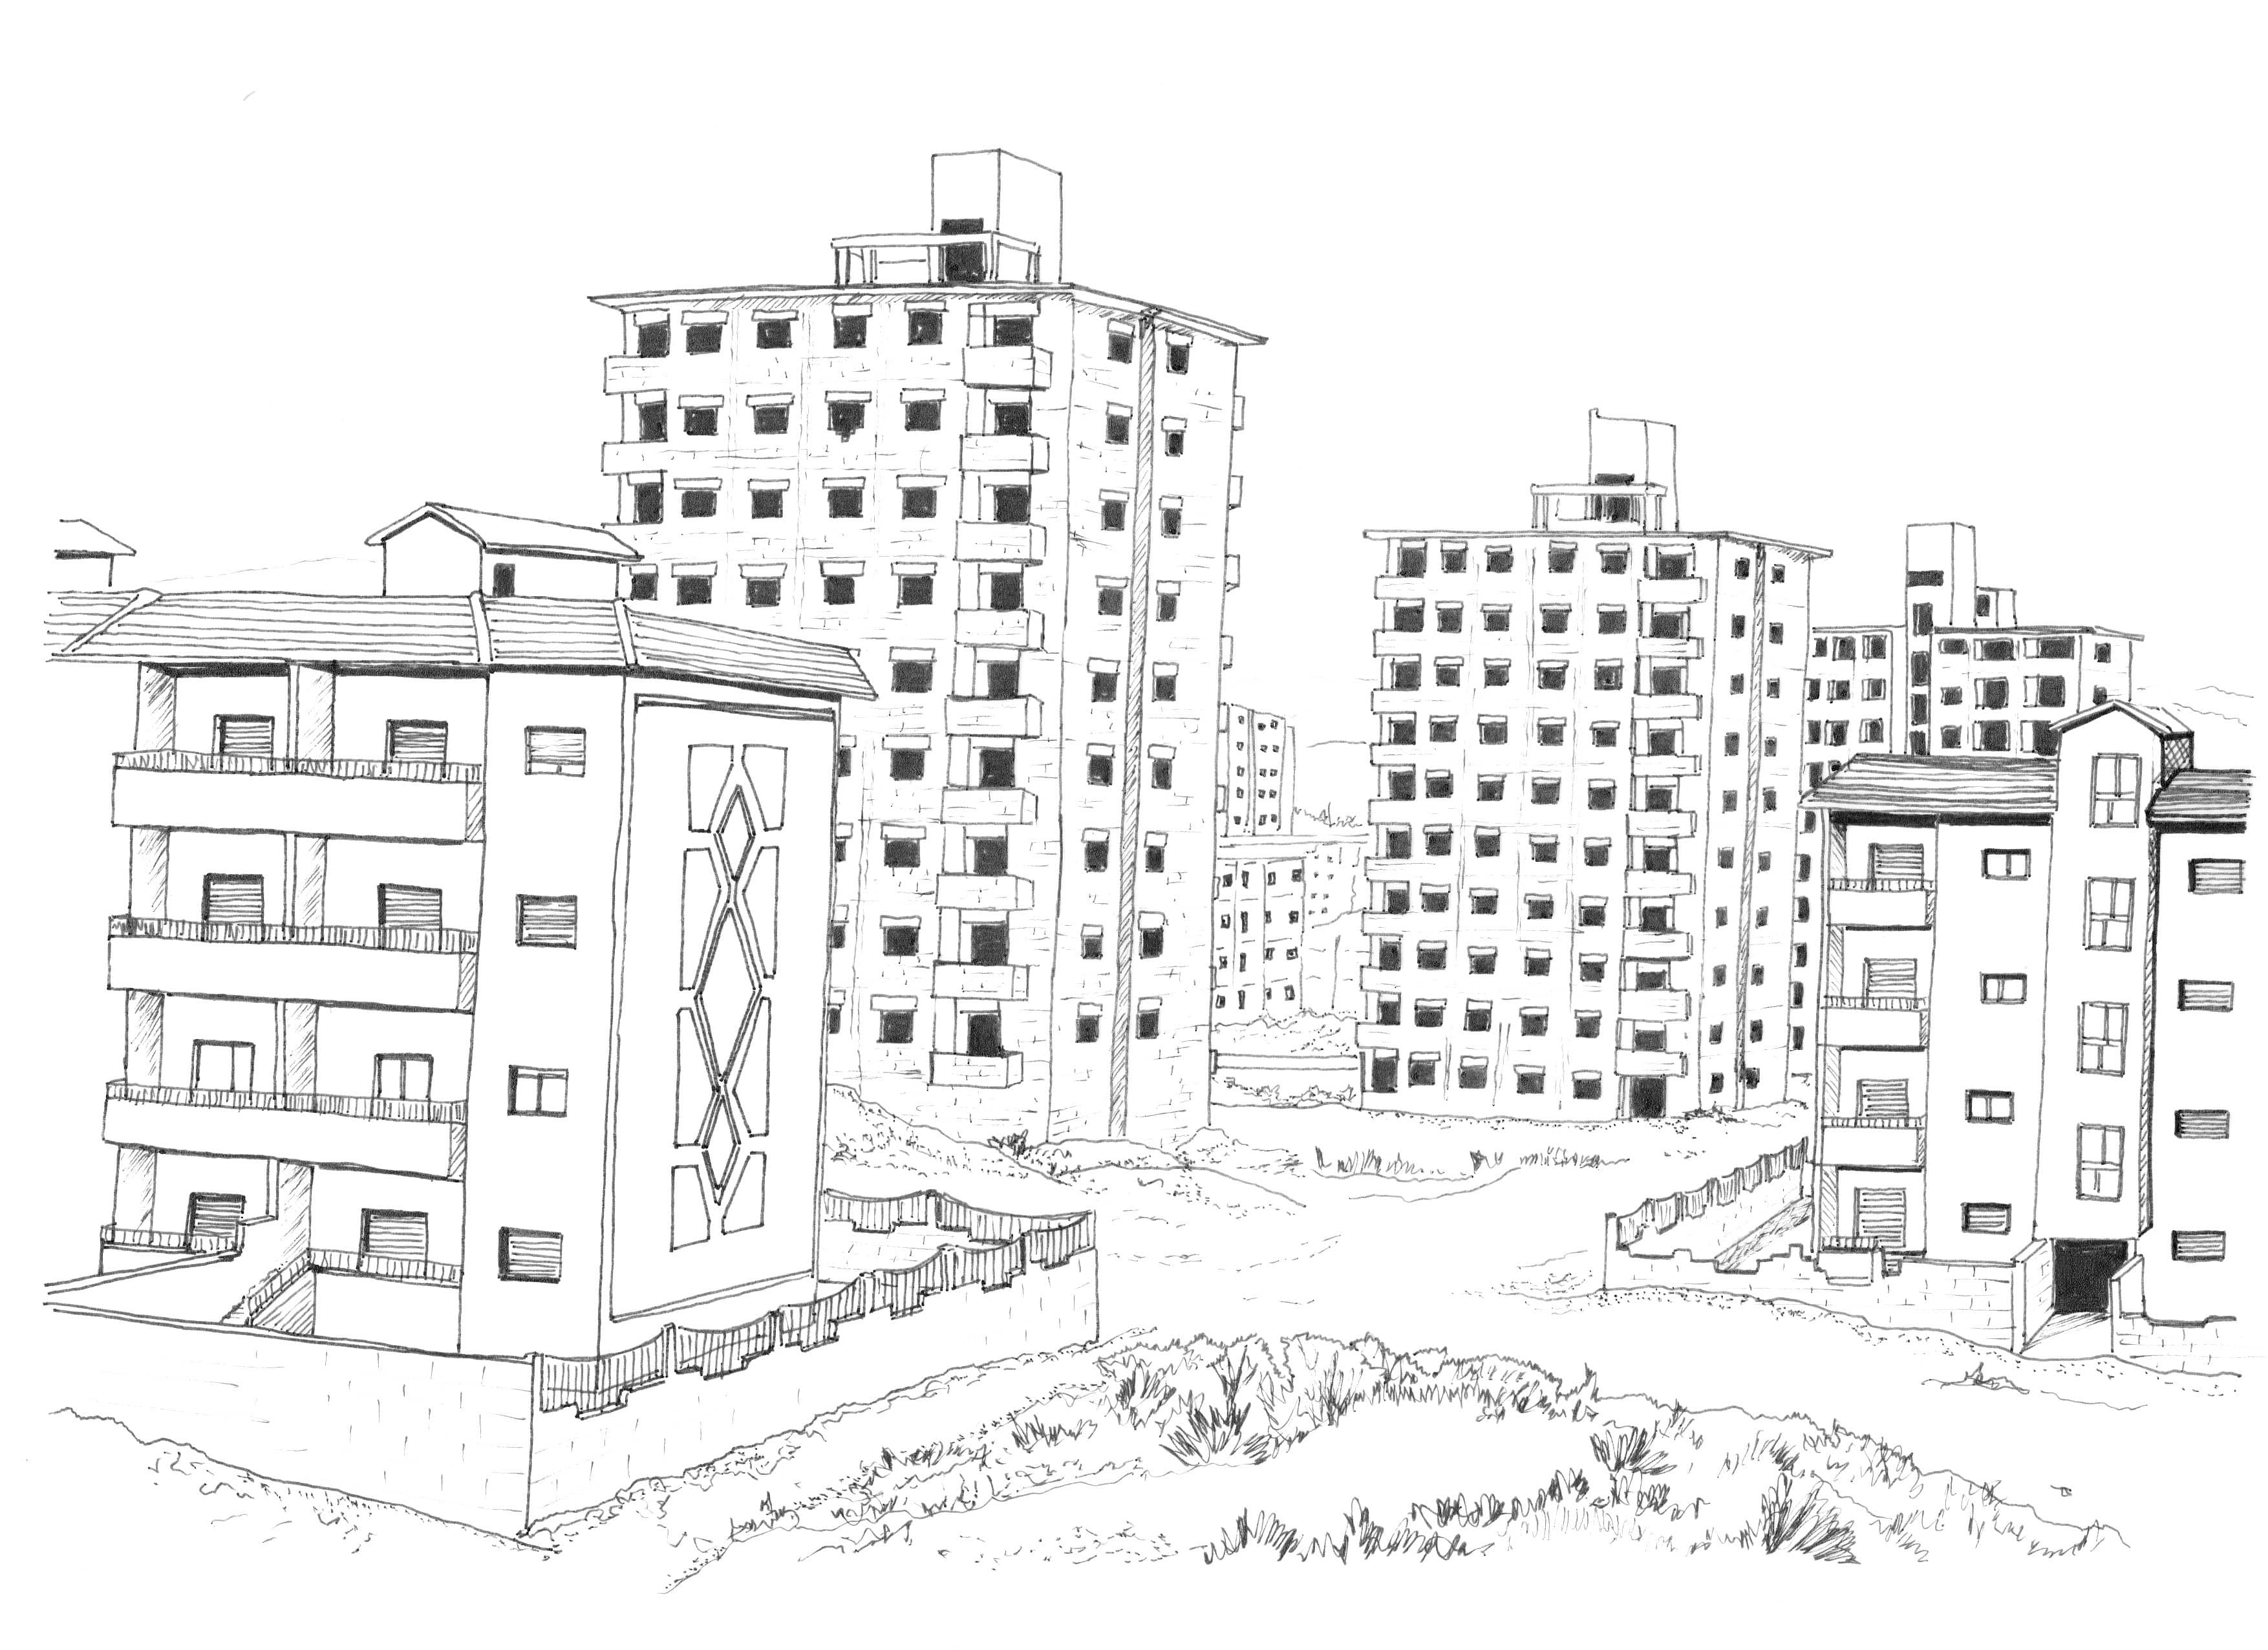 Unfinished and separated modern tower blocks for housing built by the Syrian government; illustration by Marwa al-Sabouni